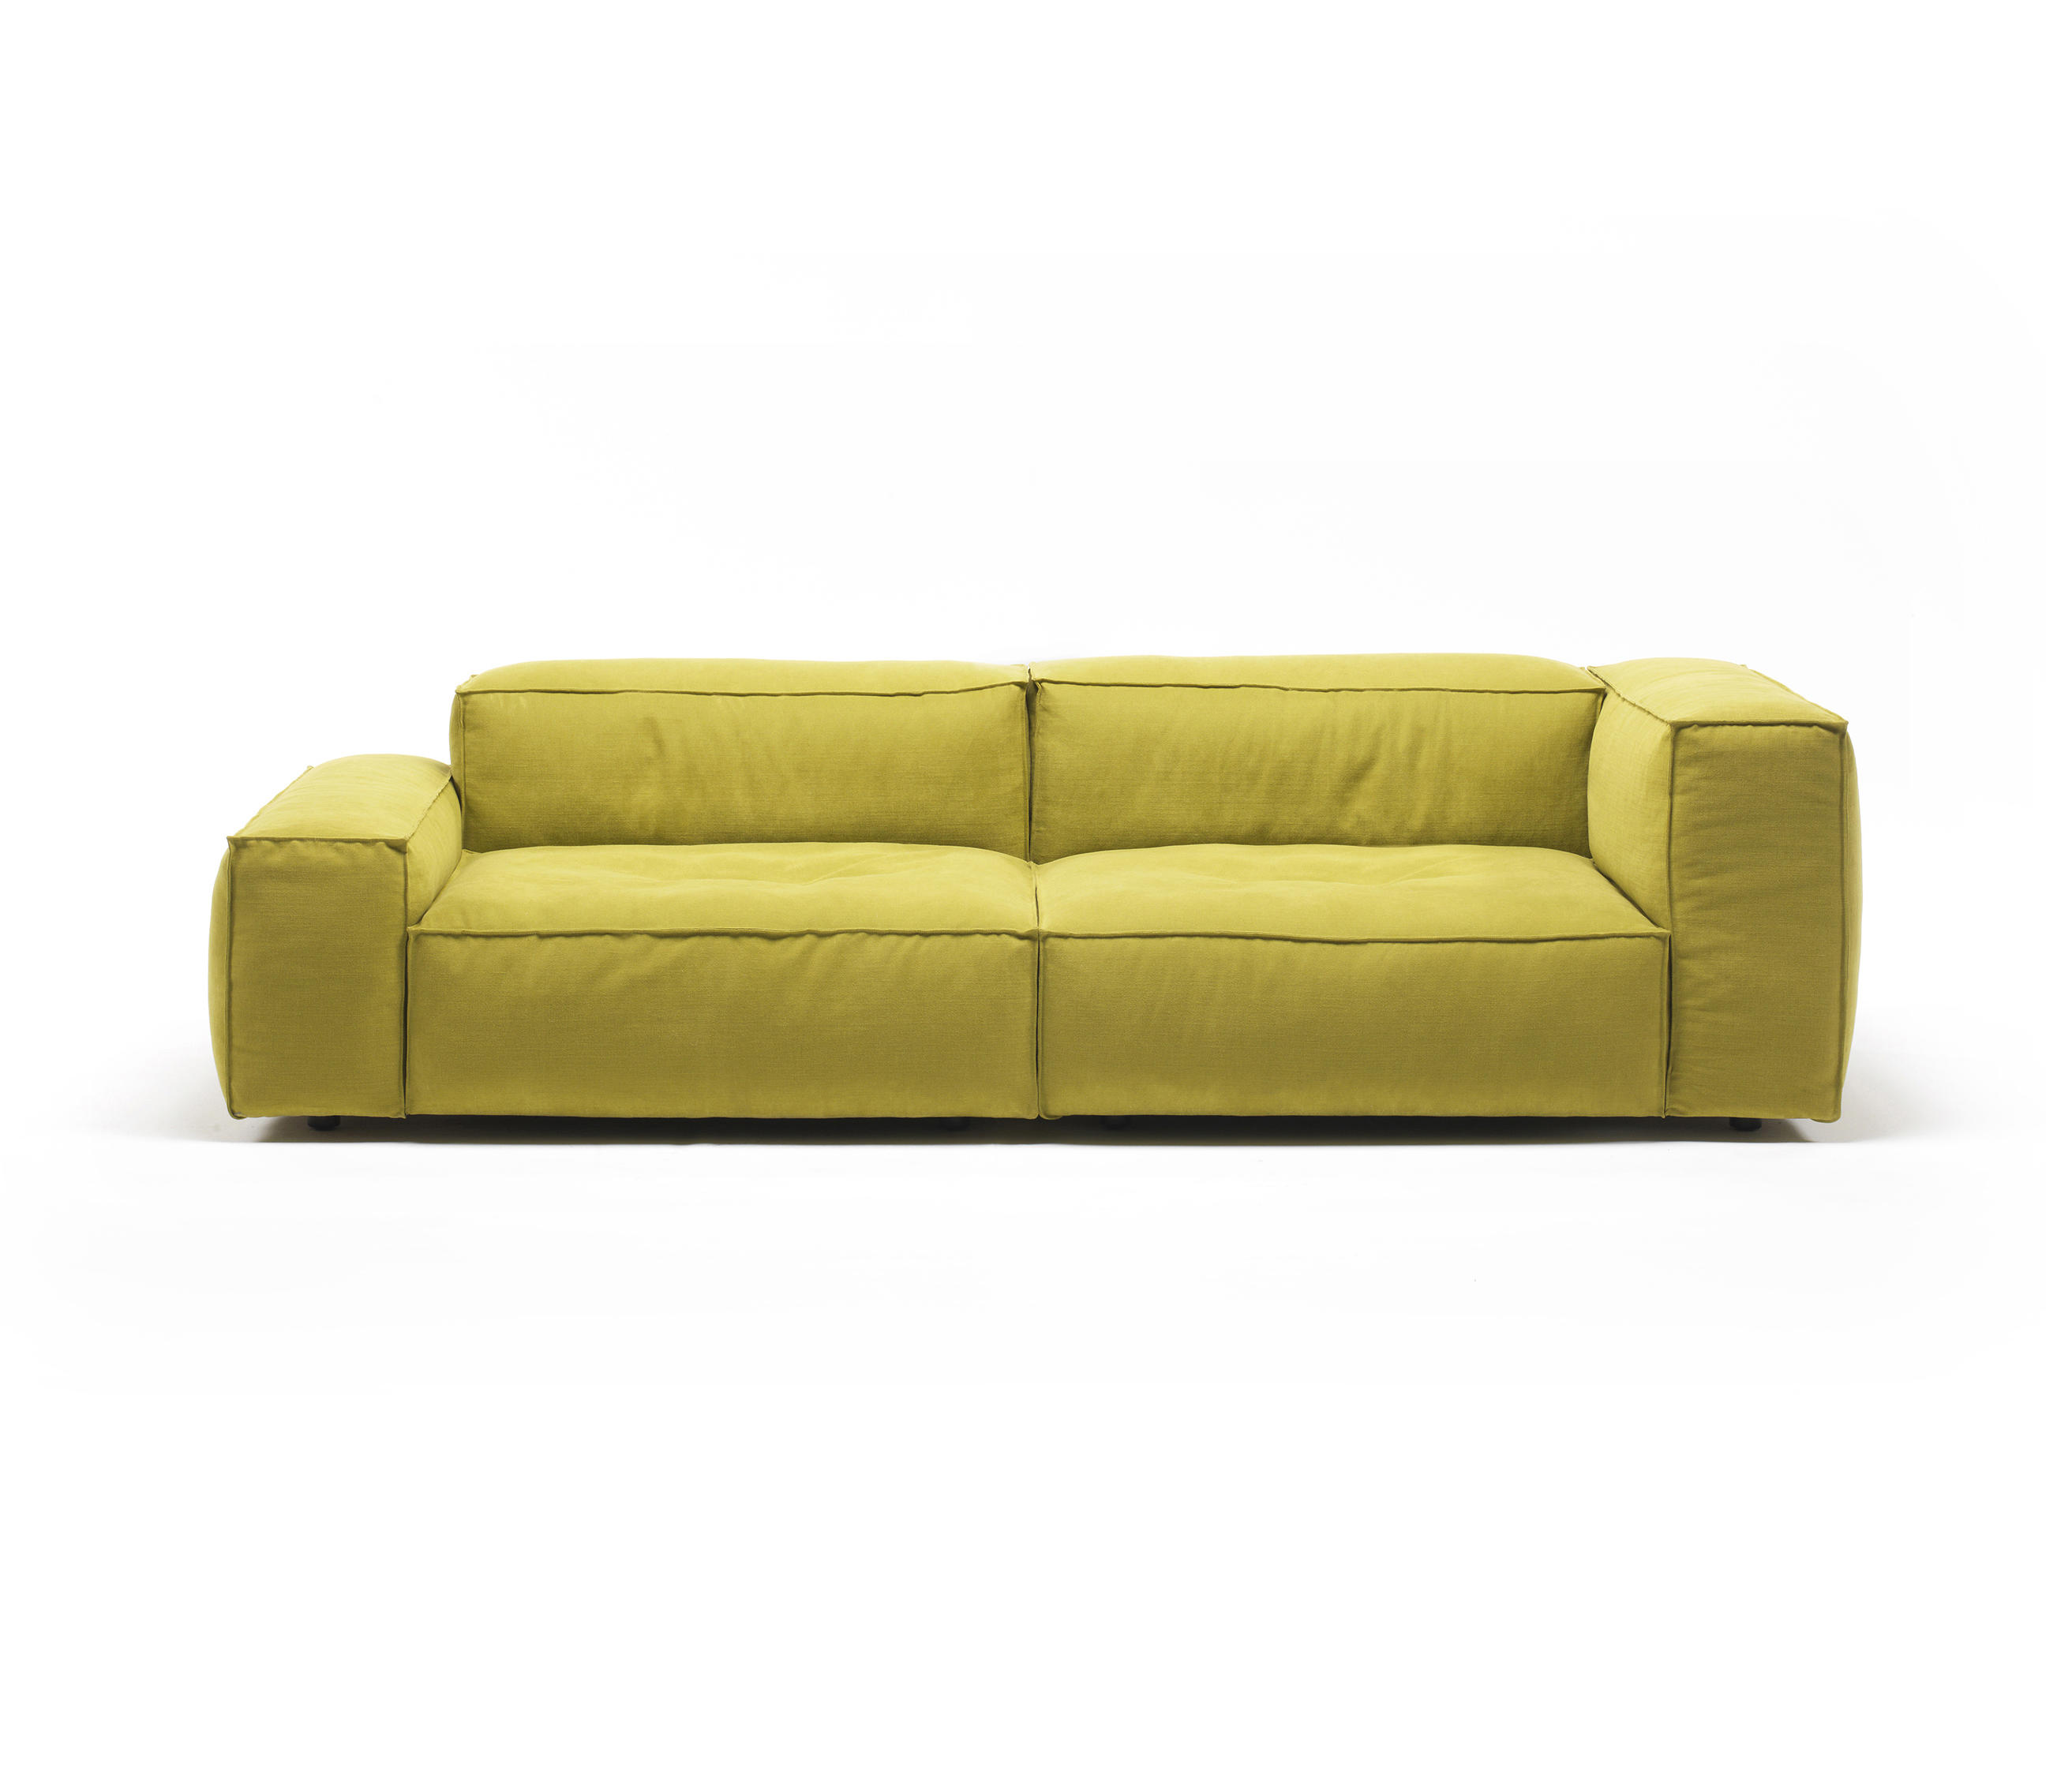 Yellow Schlafsofas Neowall - Sofas From Living Divani | Architonic